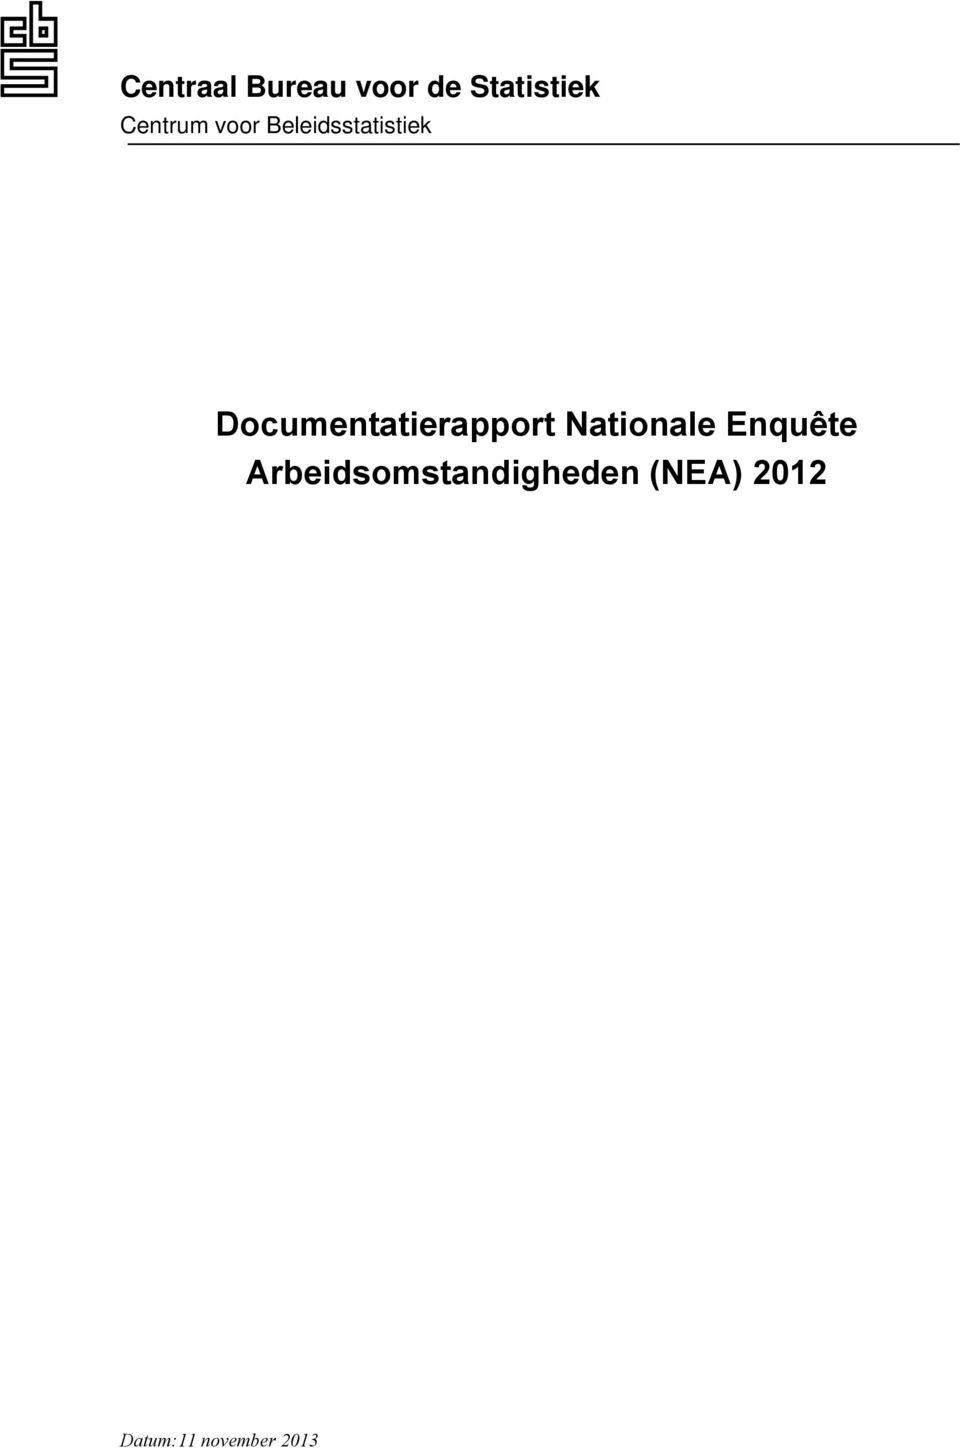 Documentatierapport Nationale Enquête